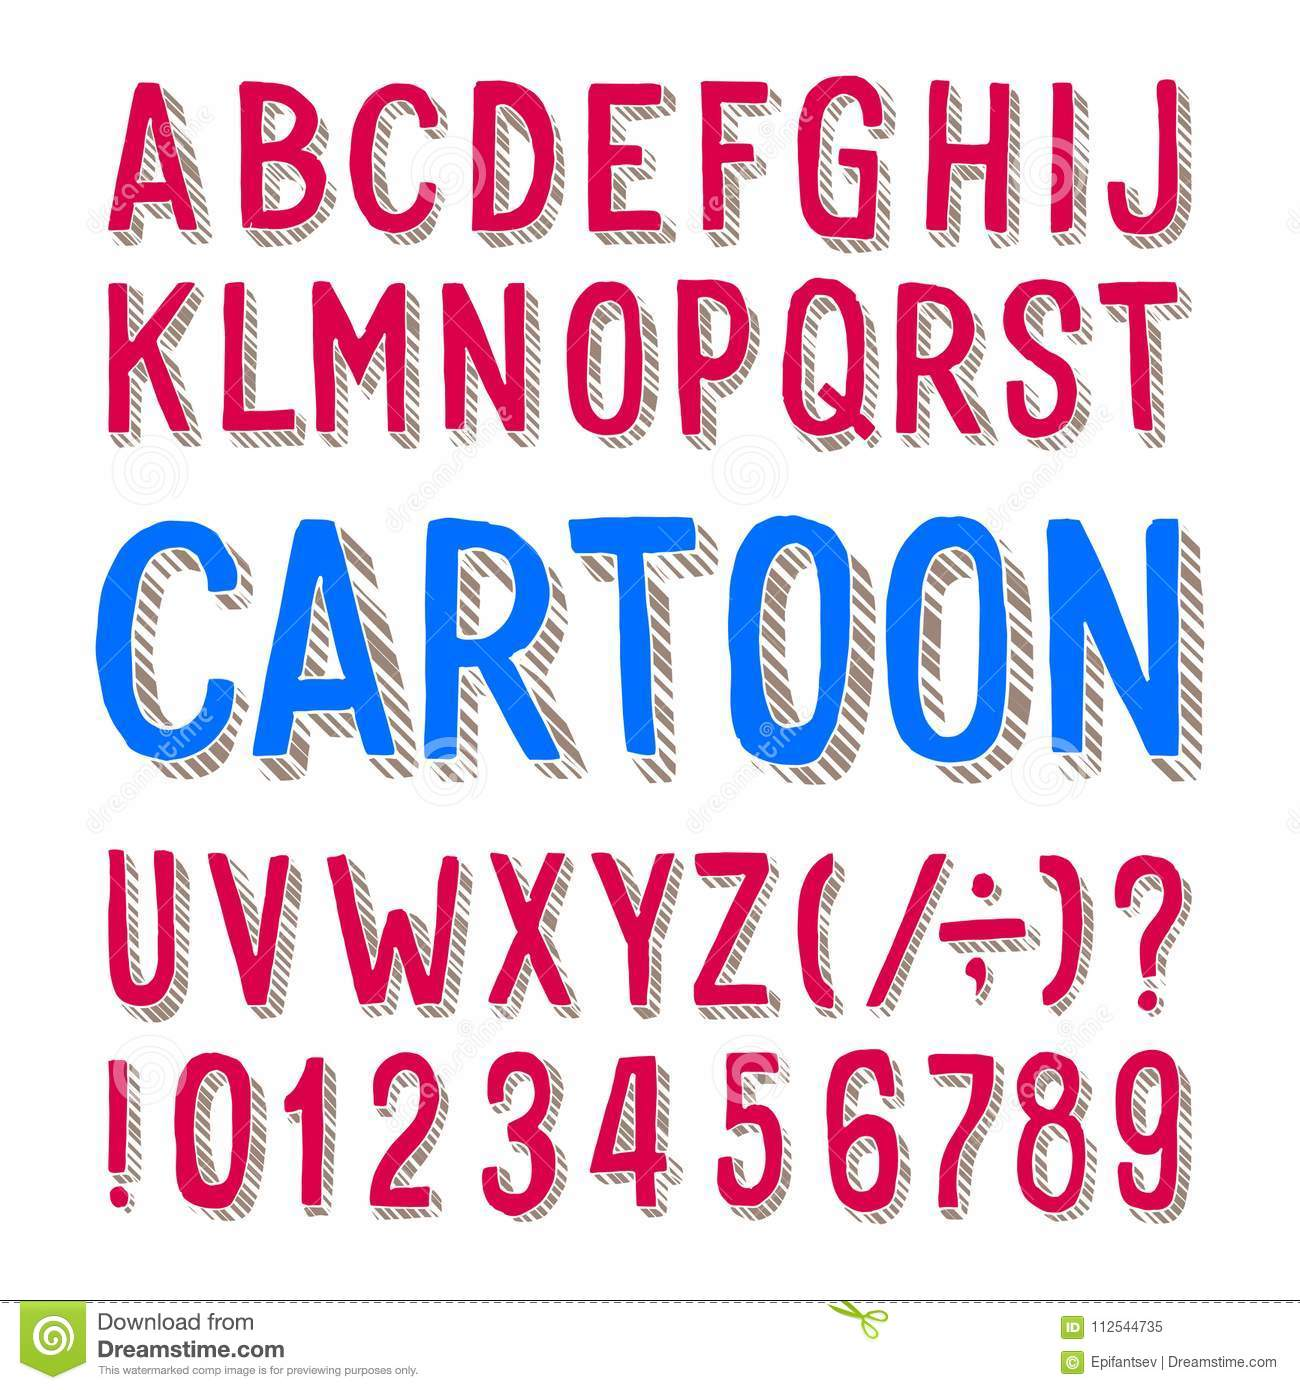 Cartoon alphabet font. Dirty letters, numbers and symbols on white background.